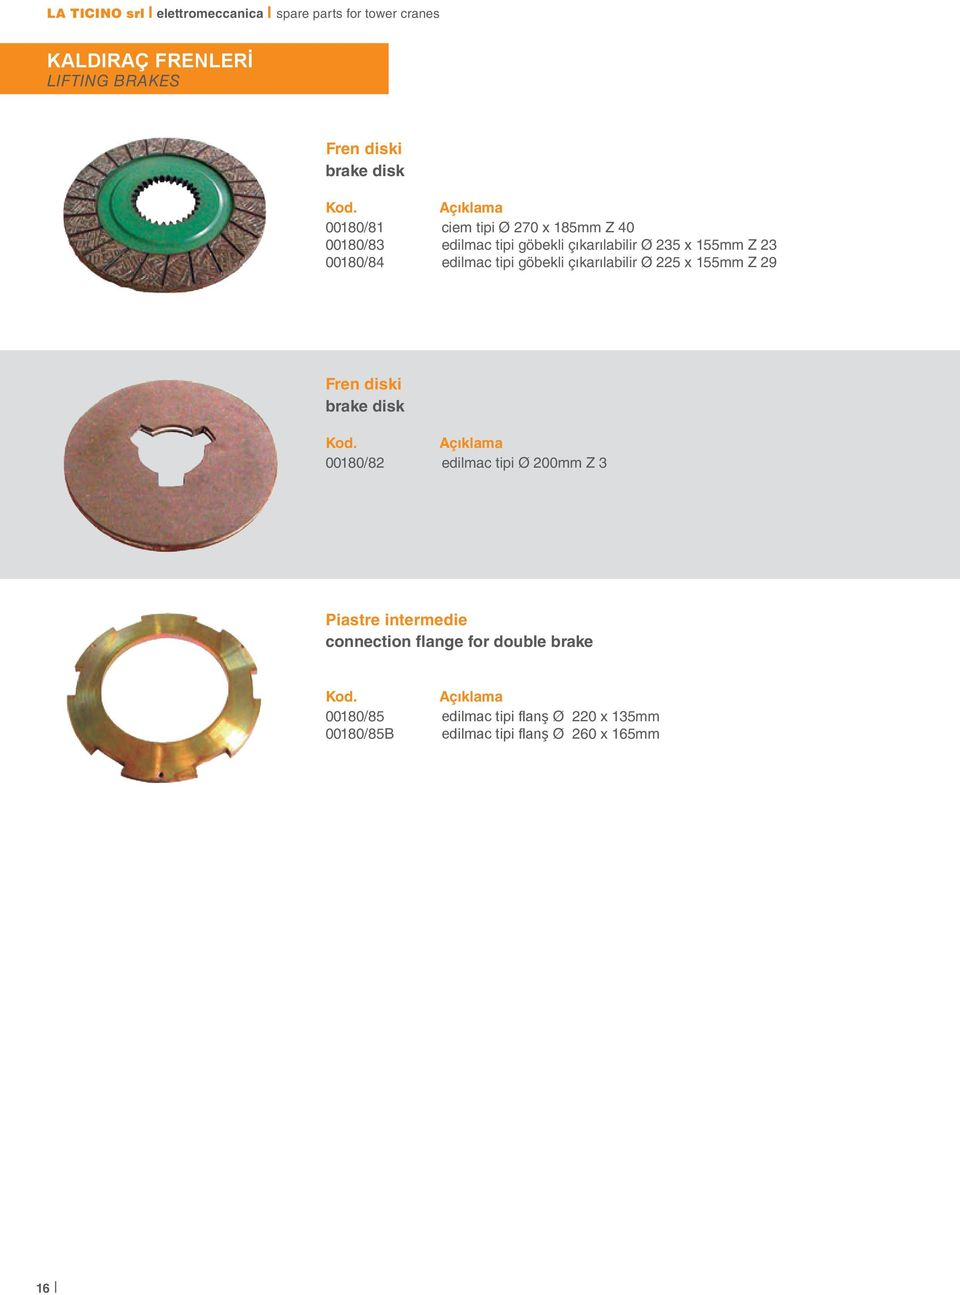 x 155mm Z 29 Fren diski brake disk 00180/82 edilmac tipi Ø 200mm Z 3 Piastre intermedie connection